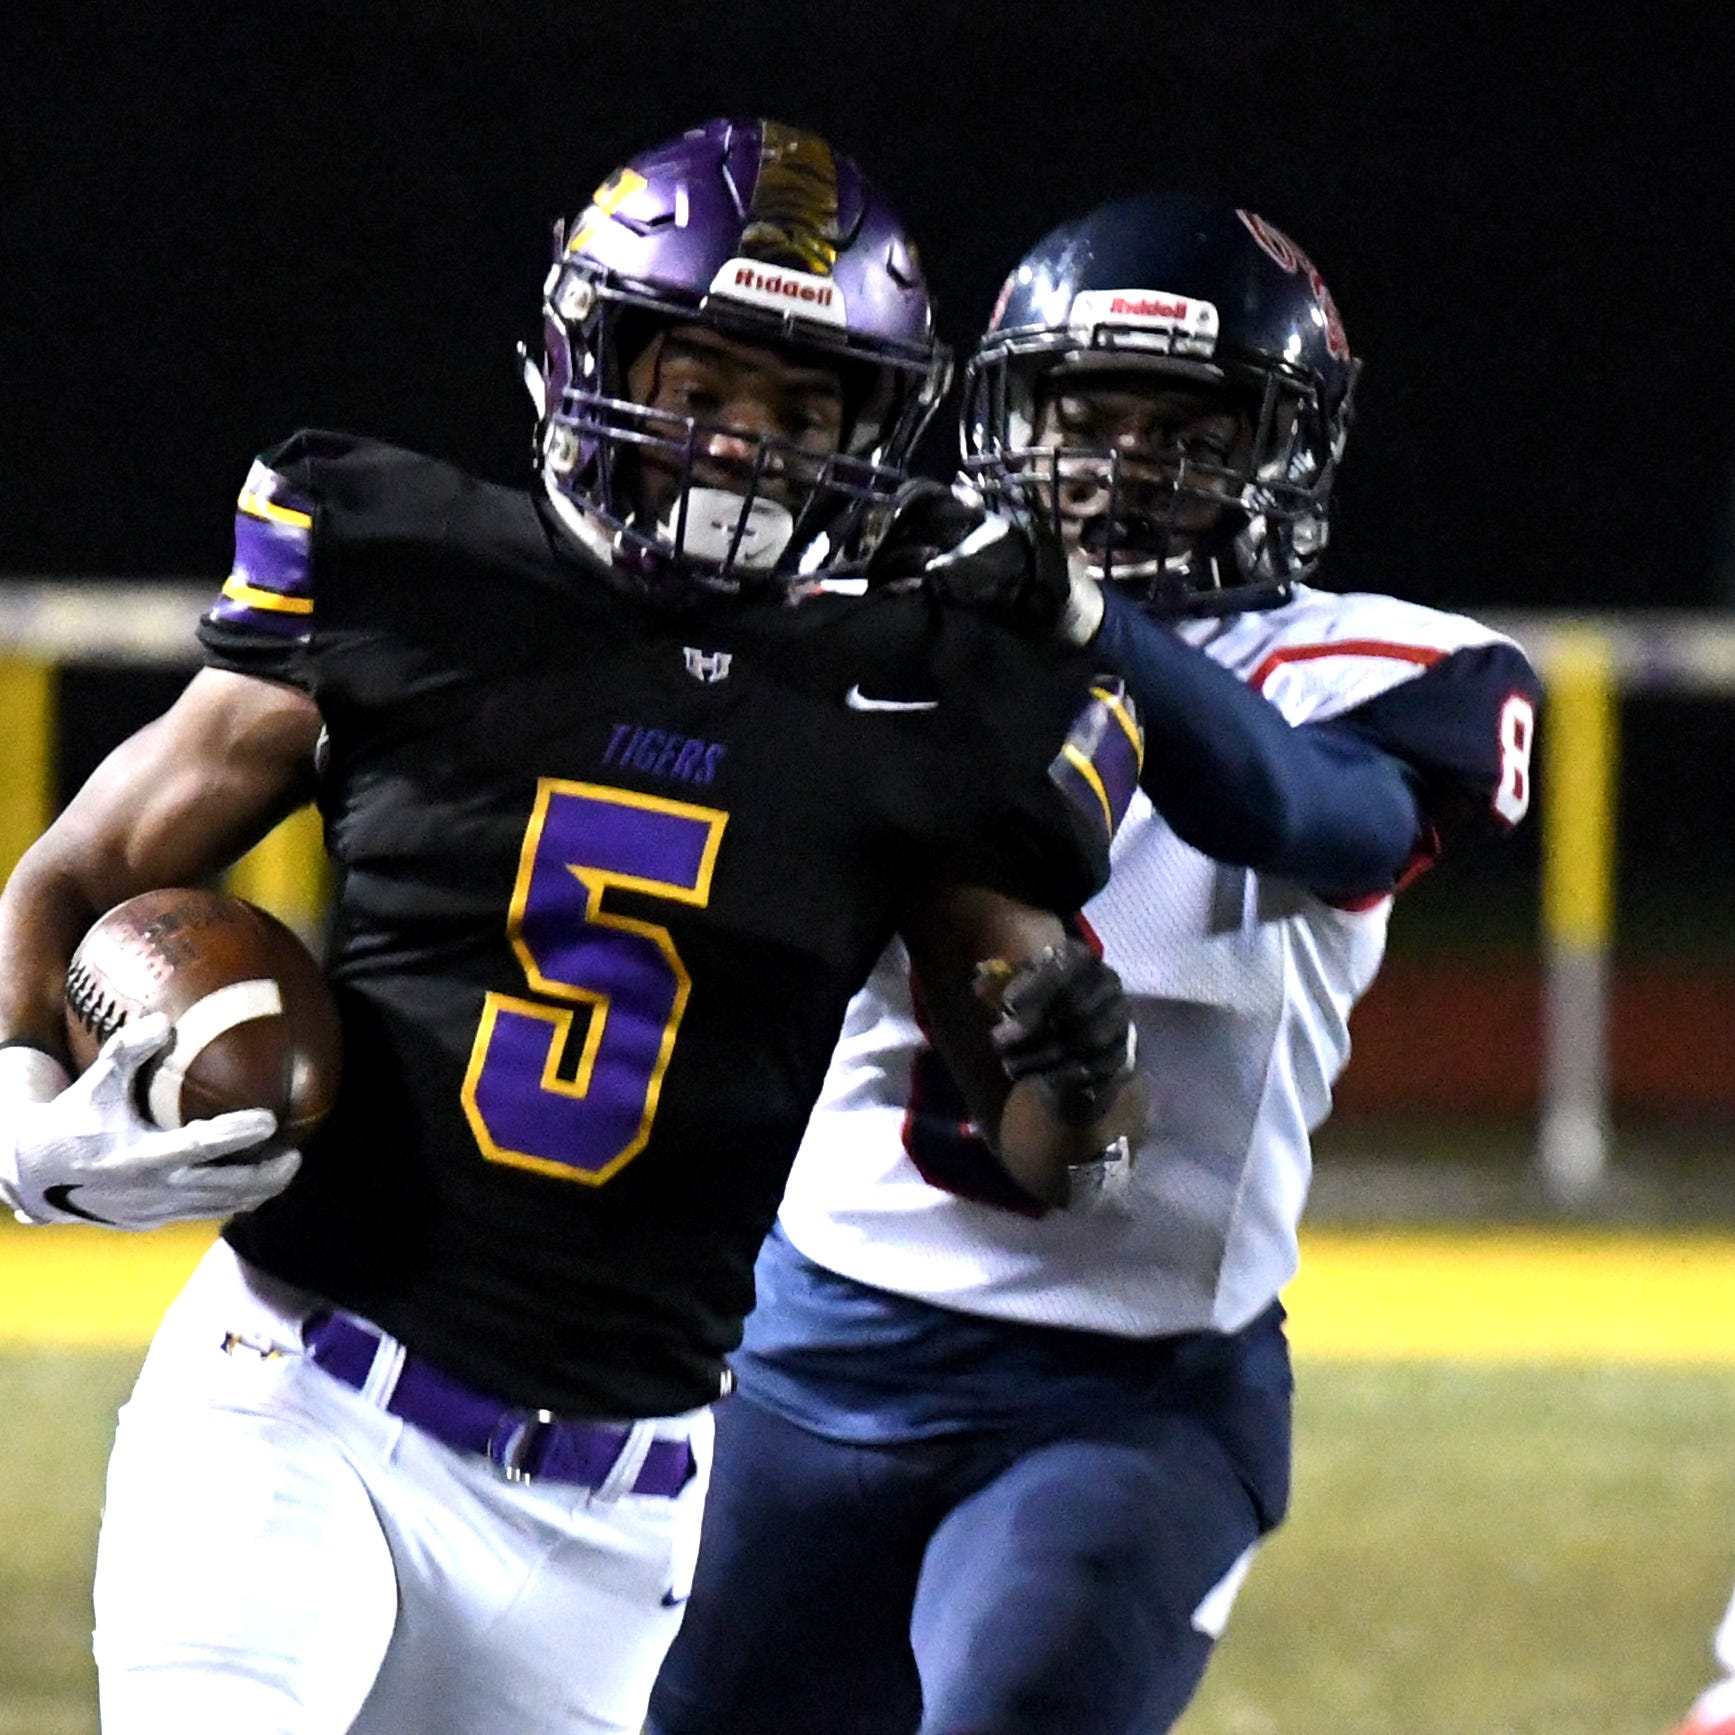 Hattiesburg dominates Brookhaven 52-6 to begin 5A championship campaign